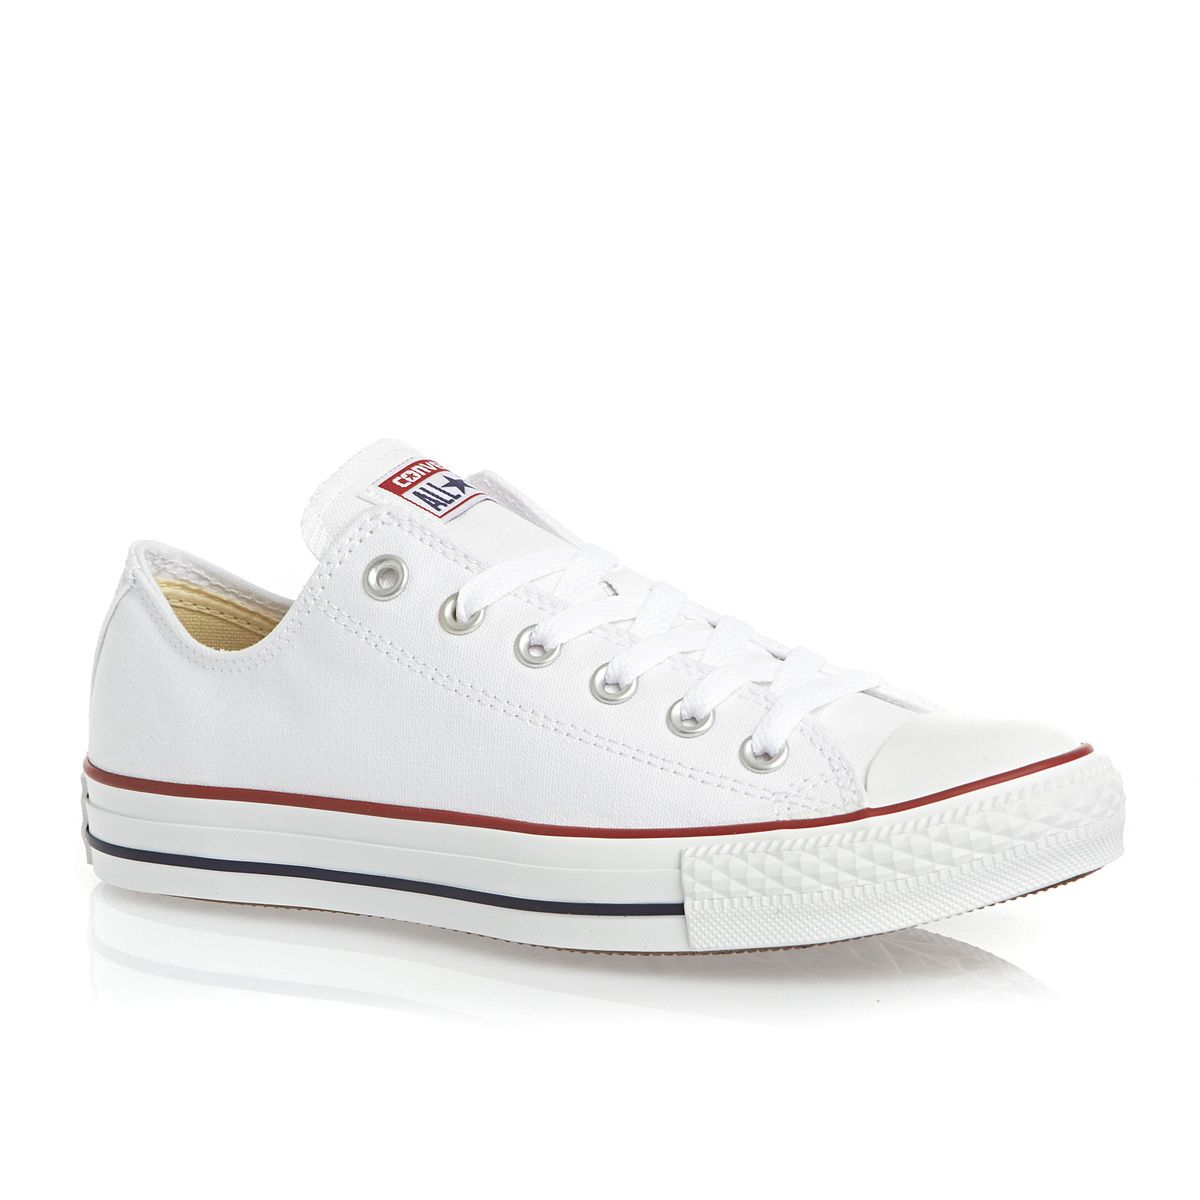 Converse femme blanche taille 37